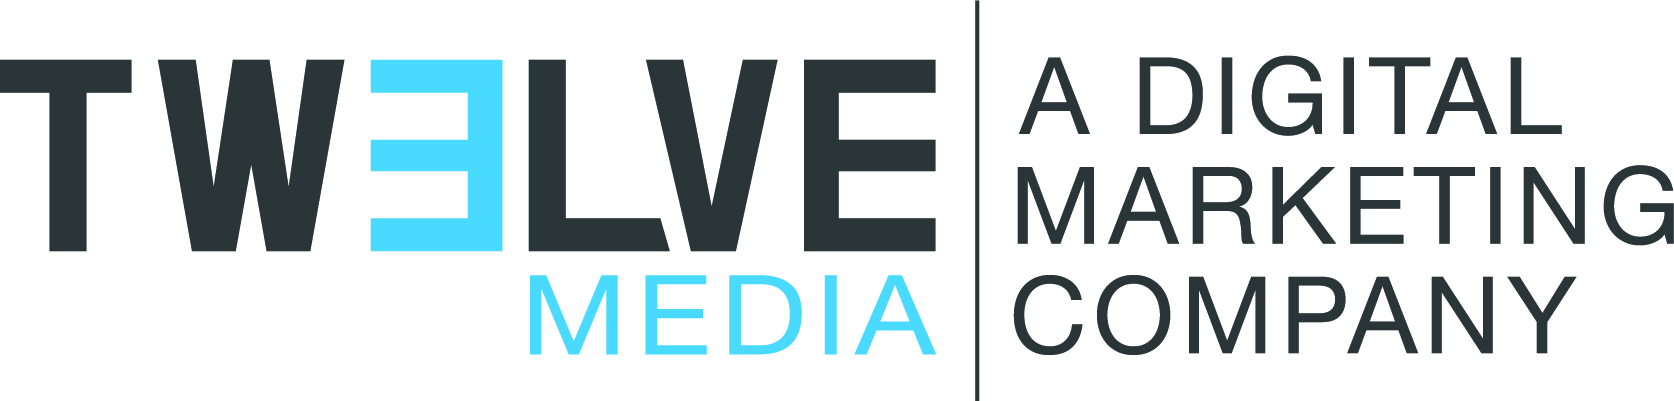 Twelve Three Media logo